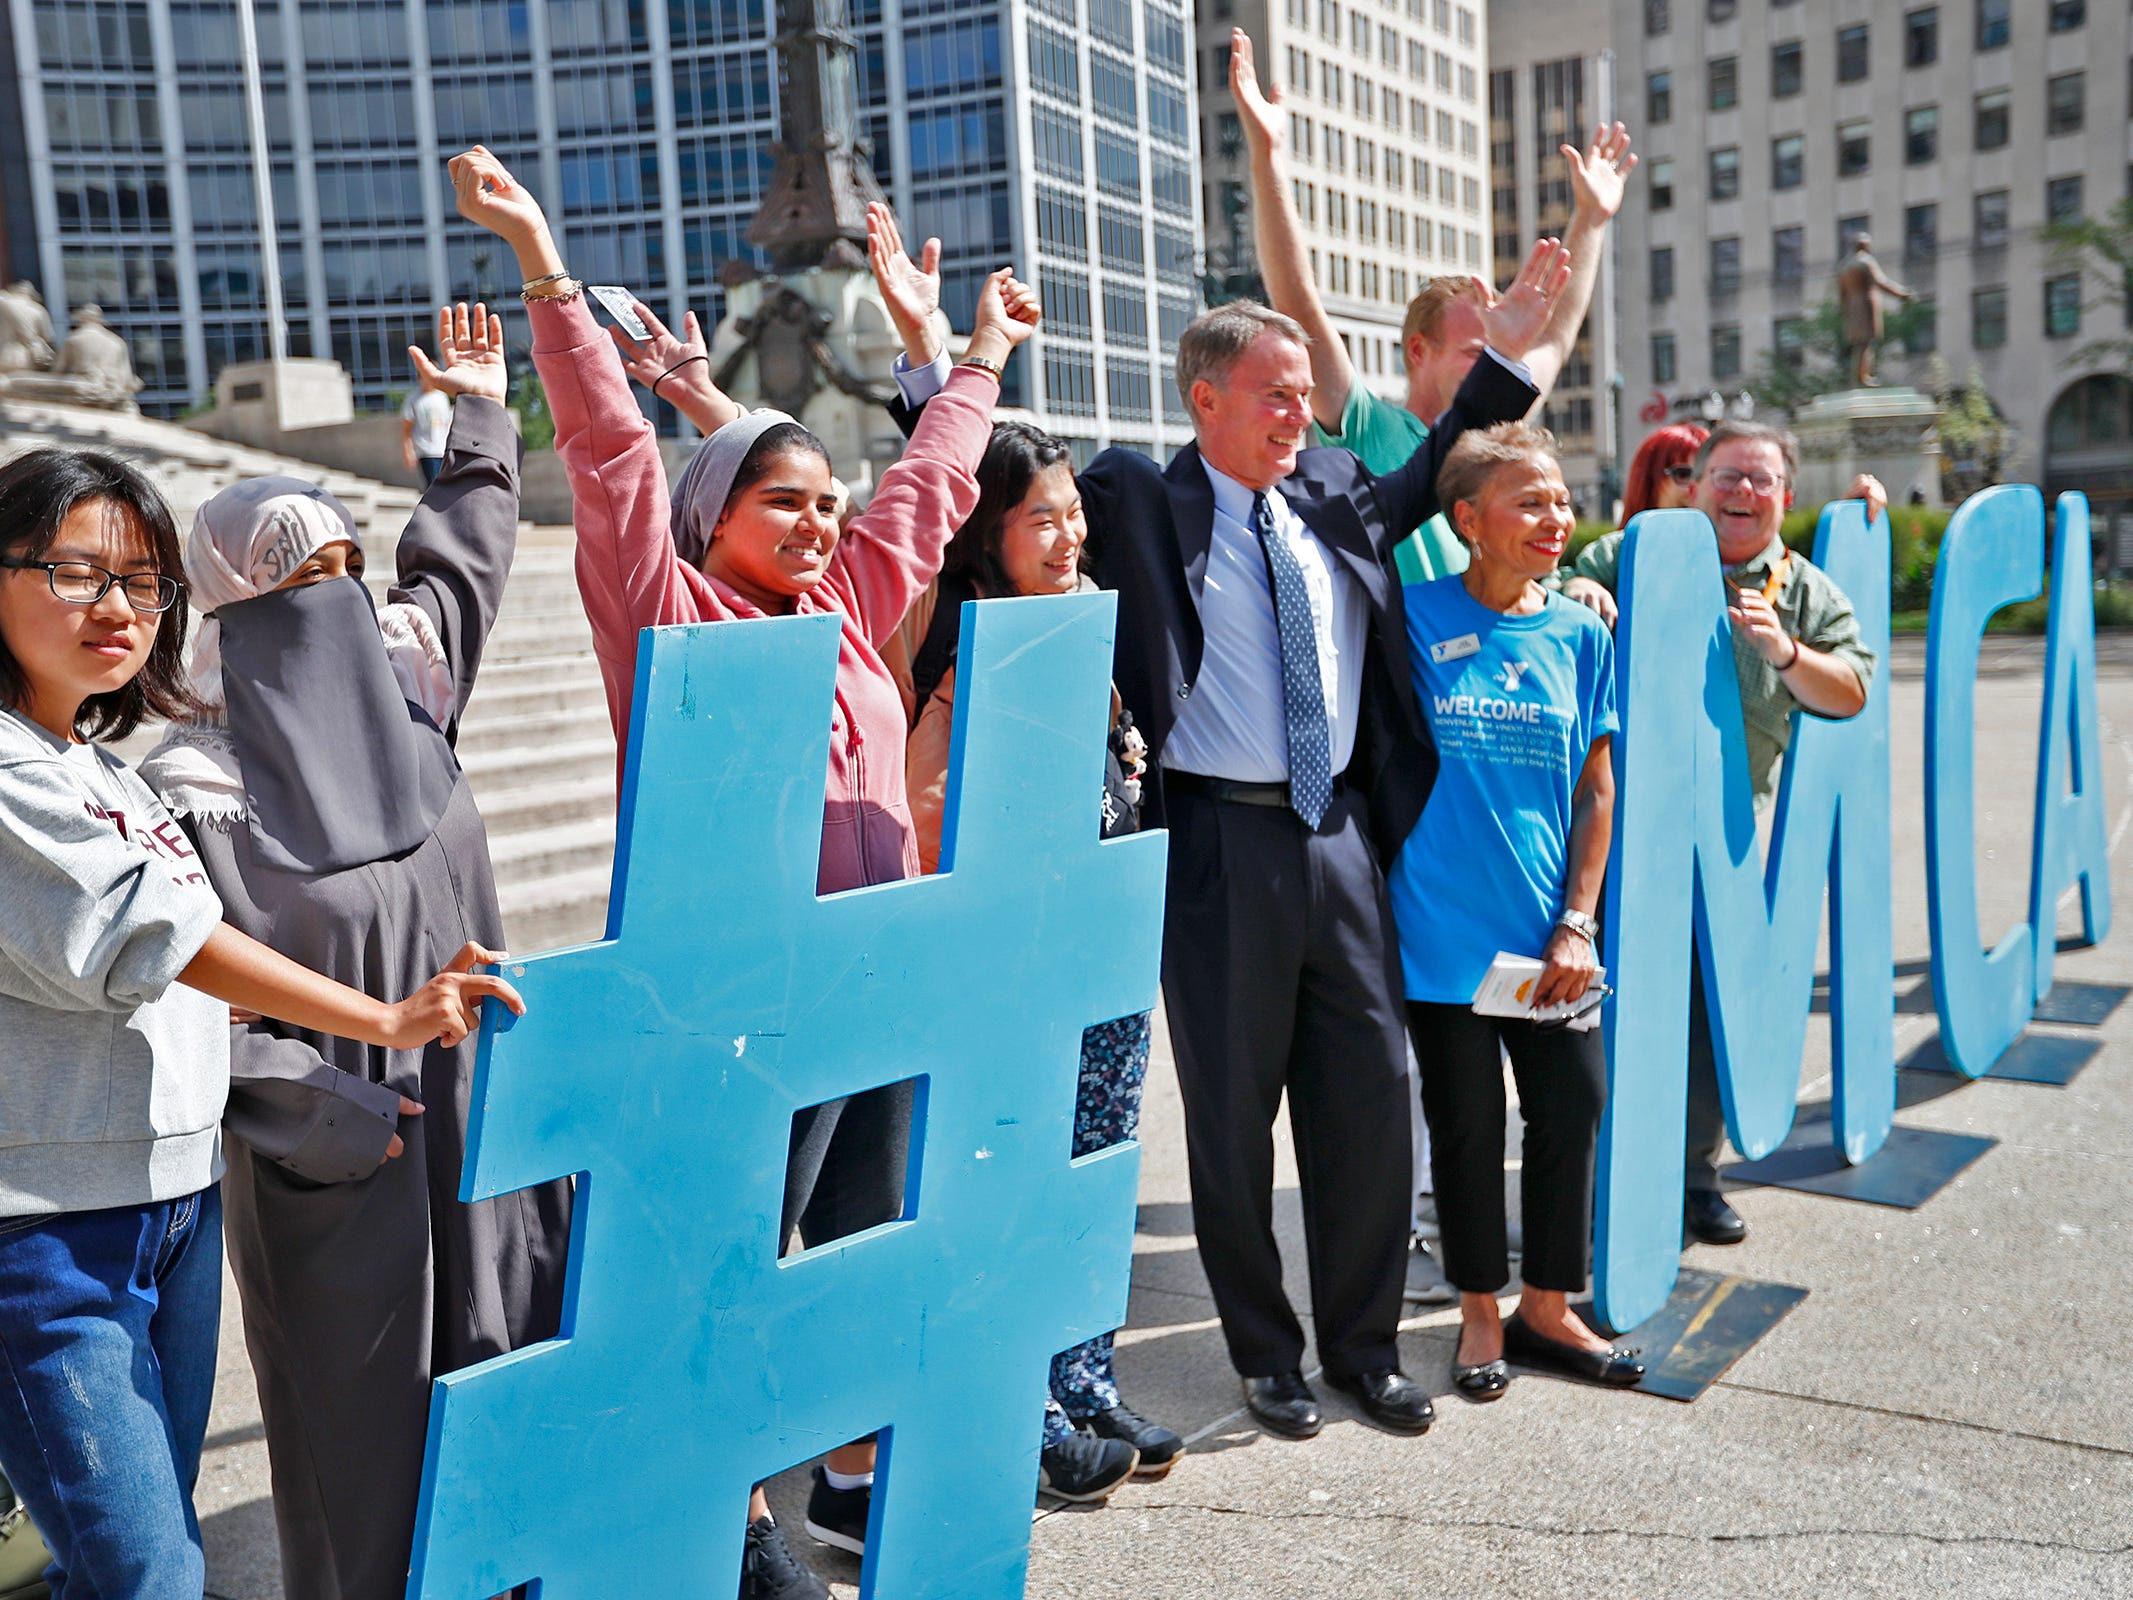 Mayor Joe Hogsett, center, poses with others for a photo with the giant #YMCA sign during the YMCA World Fest, on Monument Circle, Thursday, Sept. 13, 2018. YMCA of Greater Indianapolis hosts the free event that celebrates cultures including international food vendors, music, sports, and performers.